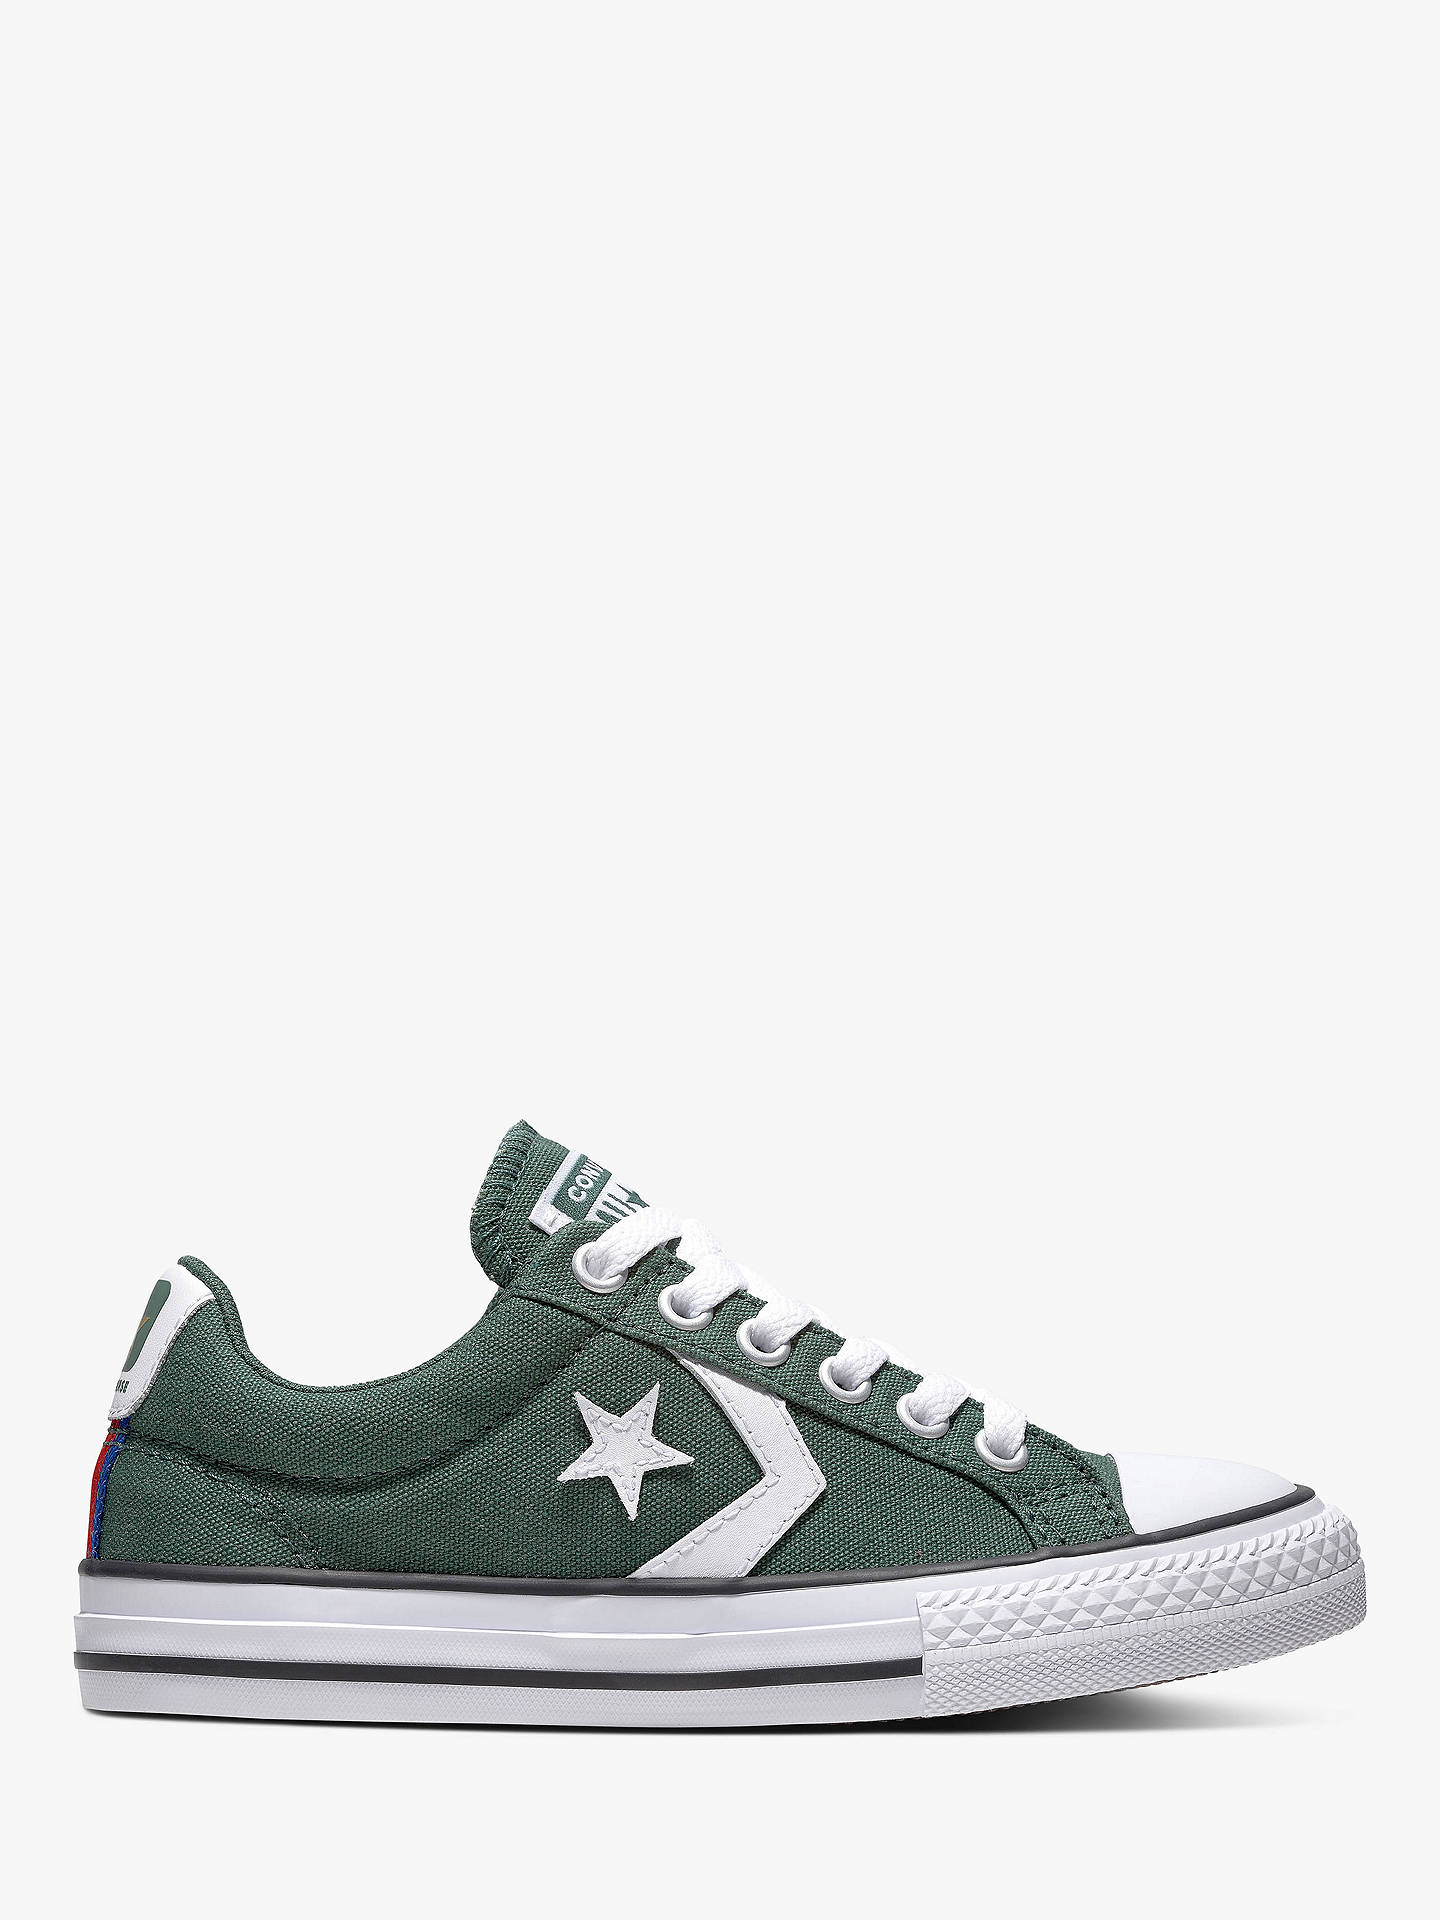 Finito expedido Dar  Converse Children's Star Player Trainers, Green at John Lewis & Partners